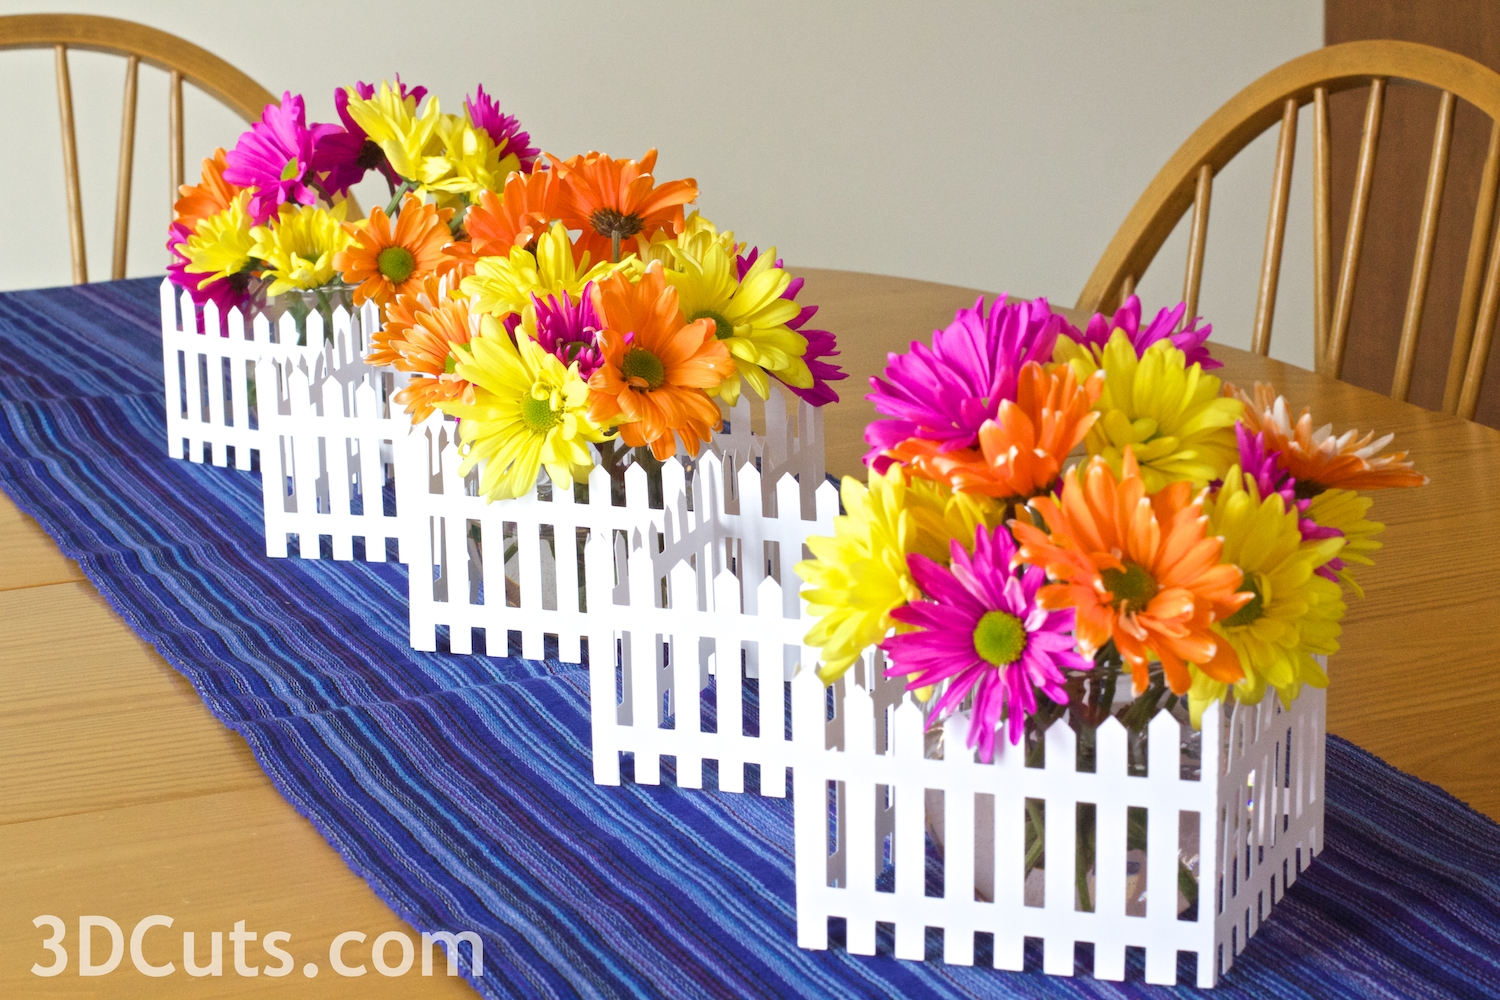 3d Picket Fence Centerpiece cutting files by 3dCuts.com, Marji Roy designs 3D cutting files in .svg, .dxf, and .pdf formats for use with Silhouette and Cricut cutting machines, paper crafting files, complete tutorial included